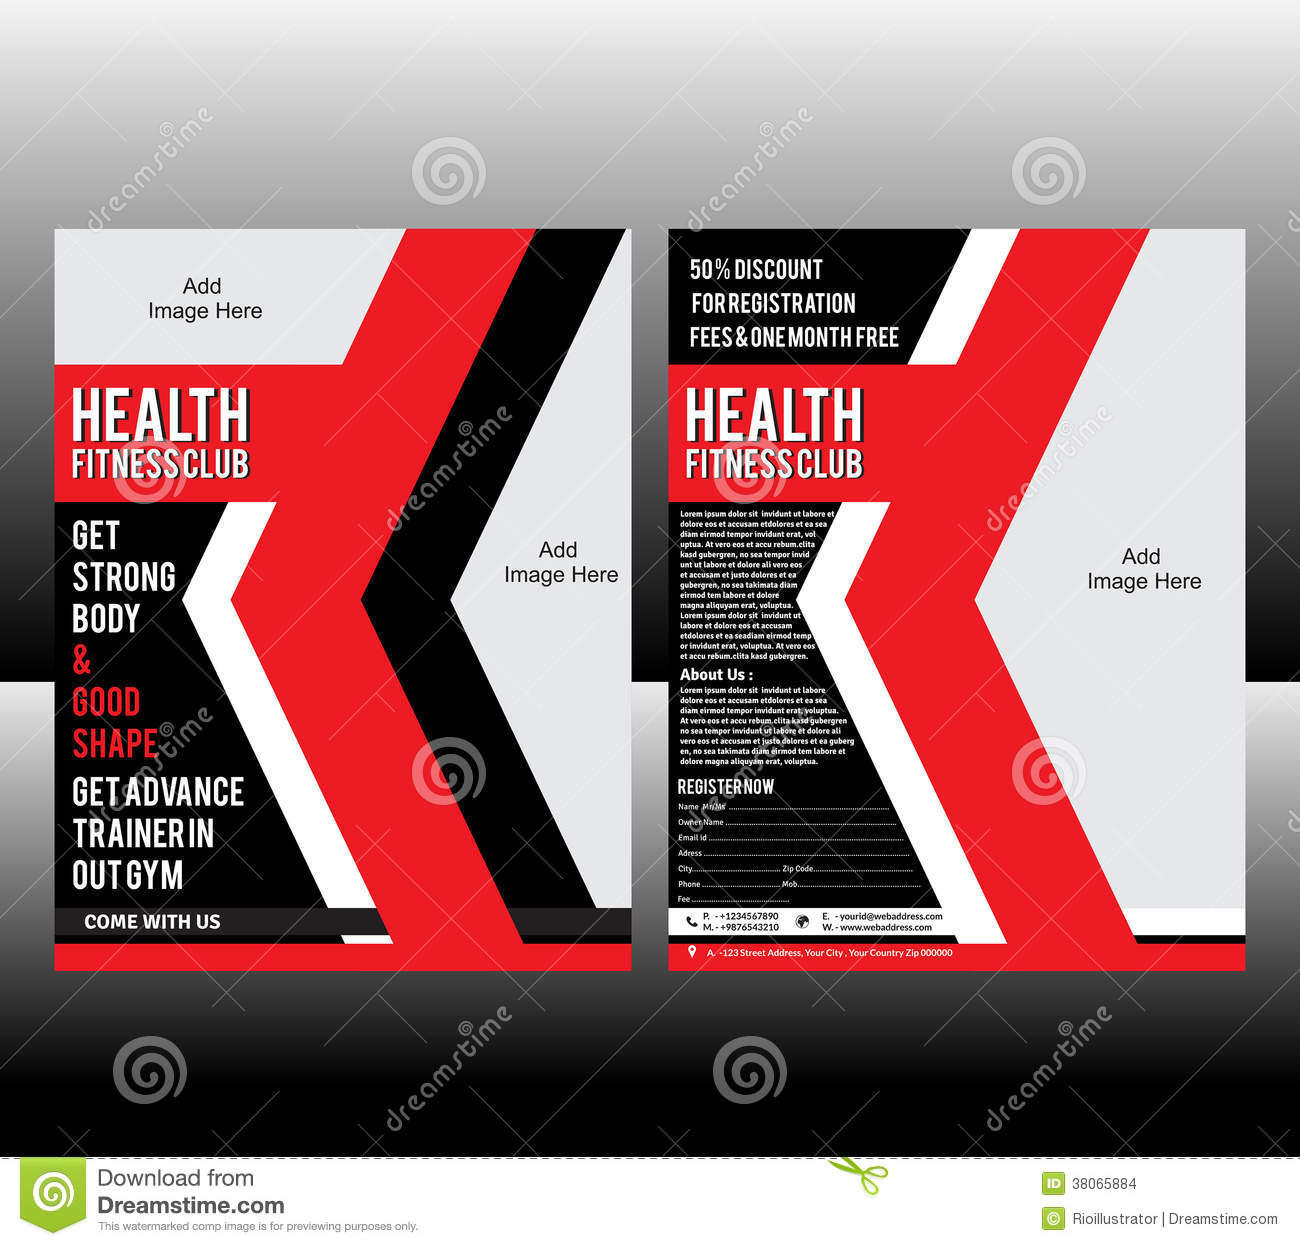 fitness flyer template stock images image 38065884. Black Bedroom Furniture Sets. Home Design Ideas